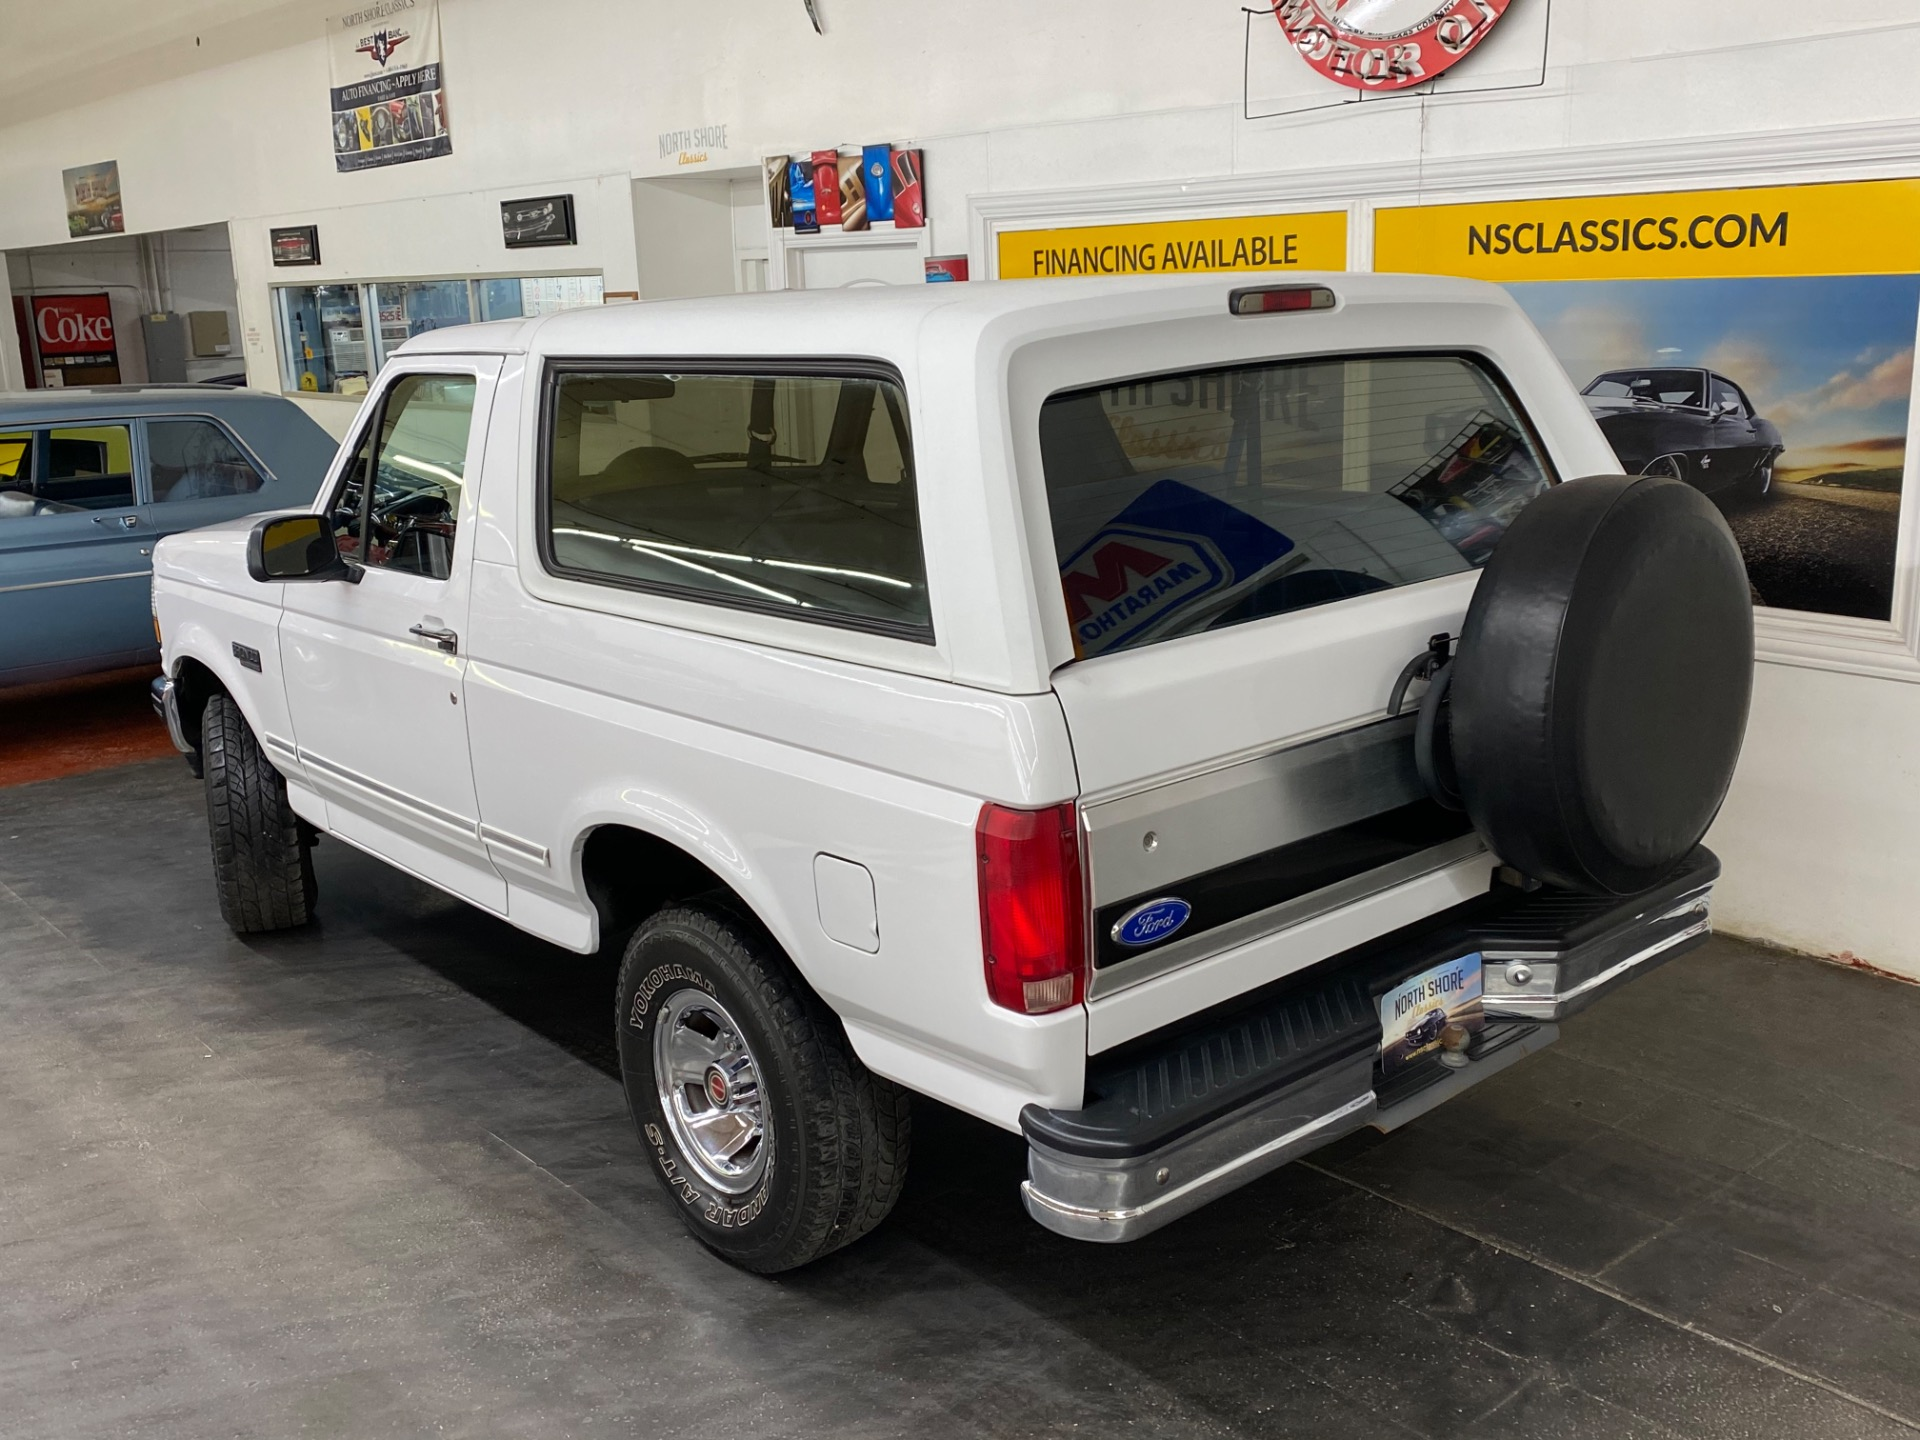 1994 ford bronco xlt 4x4 5 8l engine 2 owner vehicle see video stock 946122nsc for sale near mundelein il il ford dealer 1994 ford bronco xlt 4x4 5 8l engine